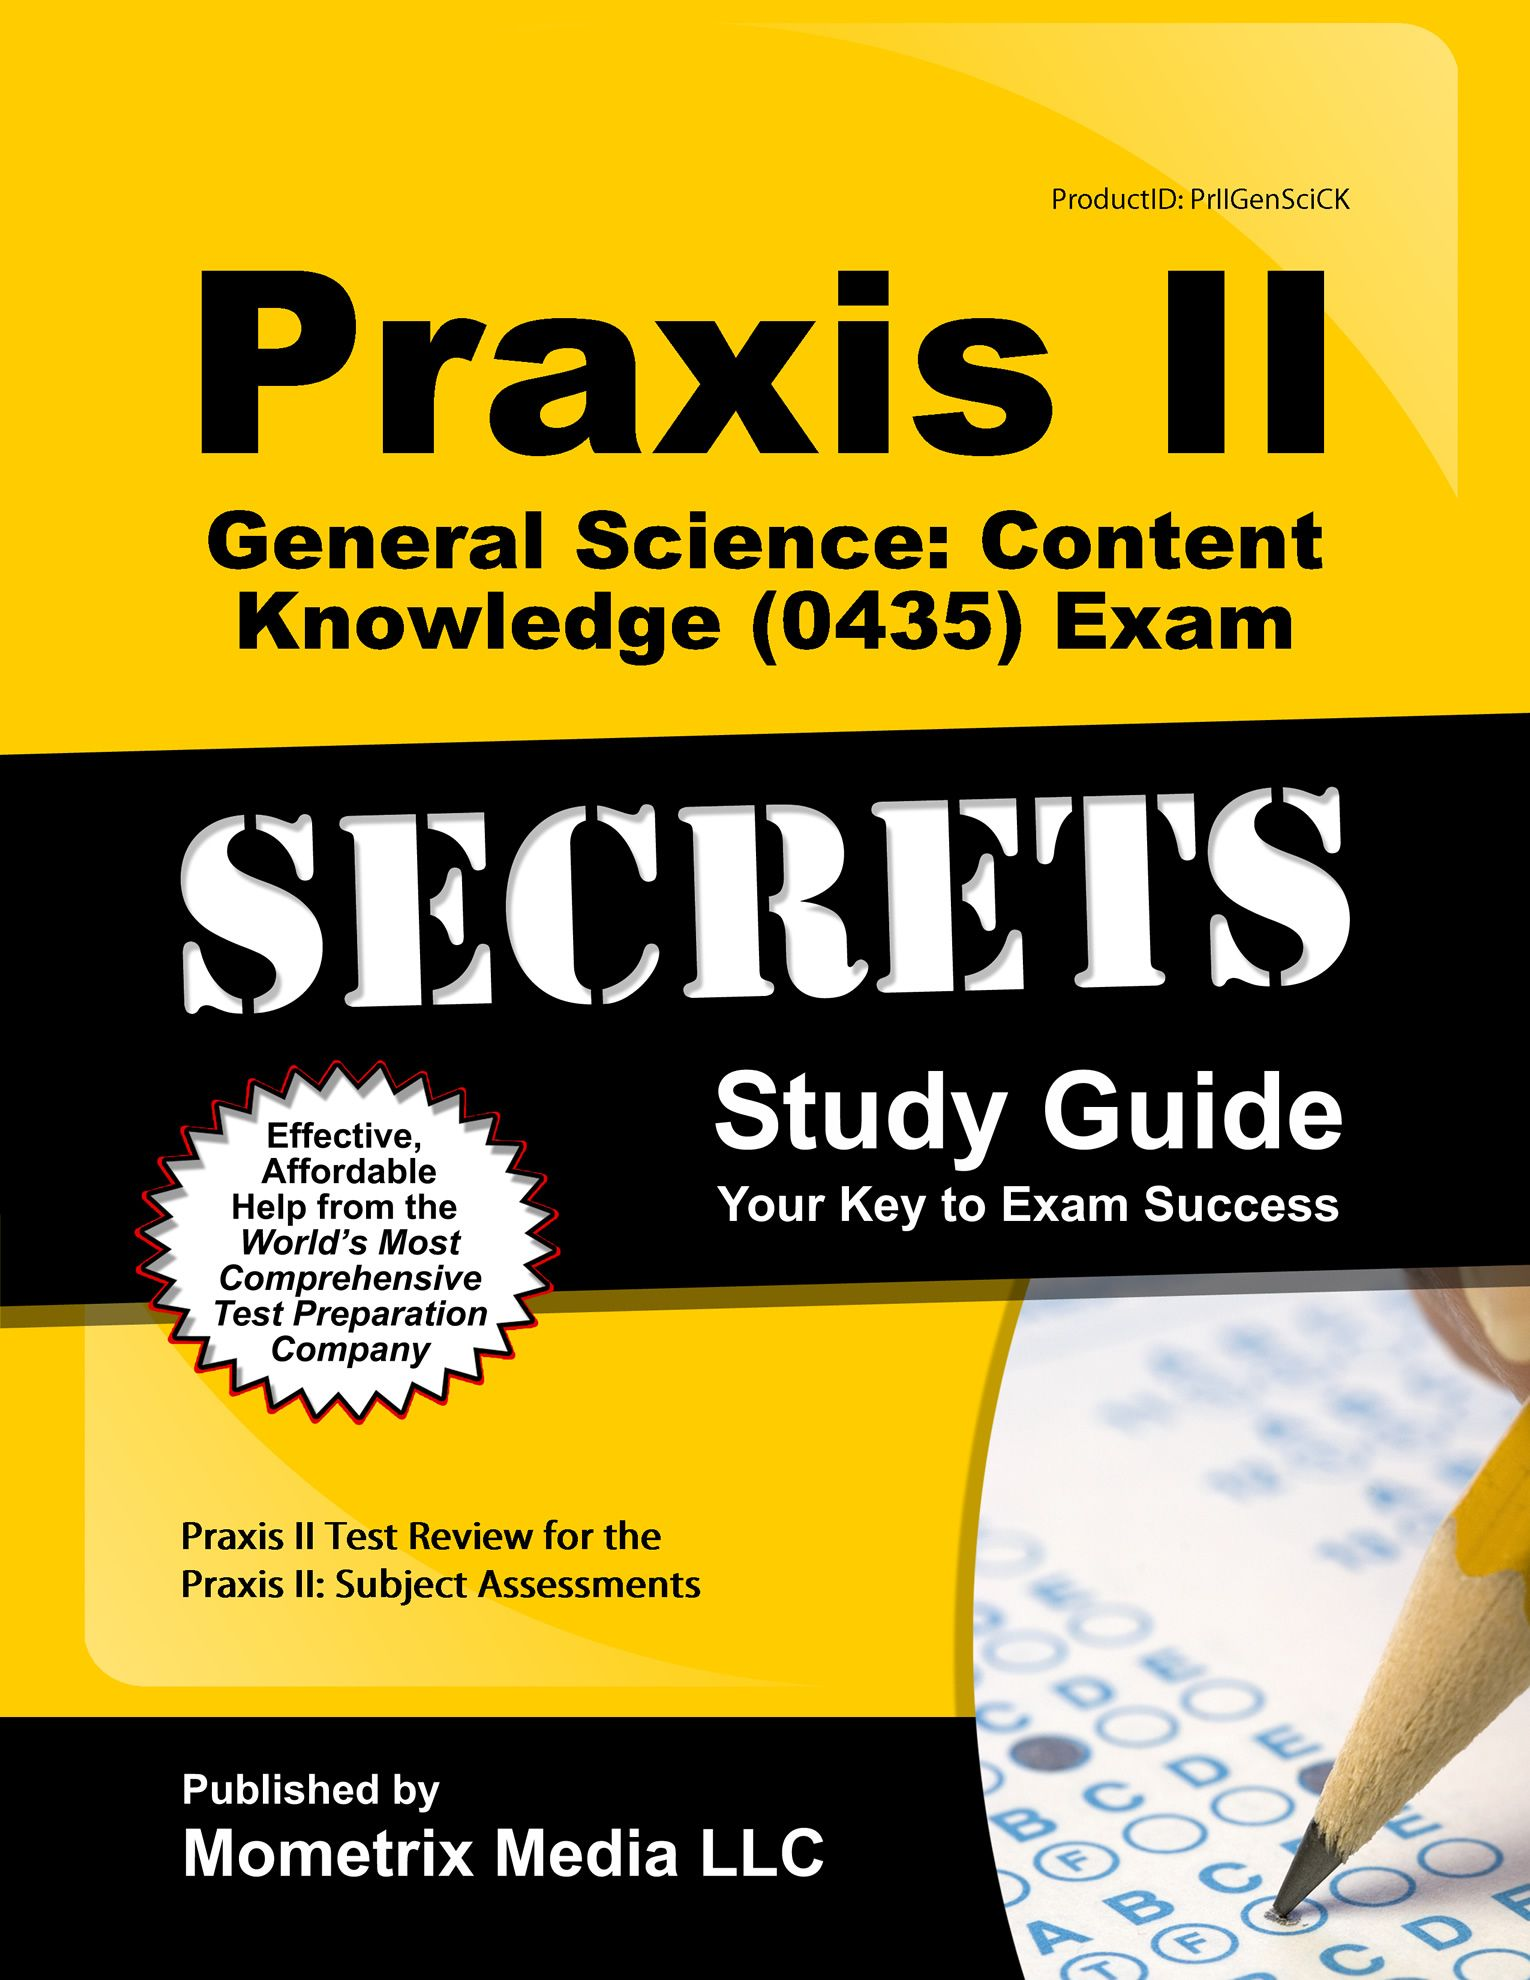 Pin on Praxis II Study Guide